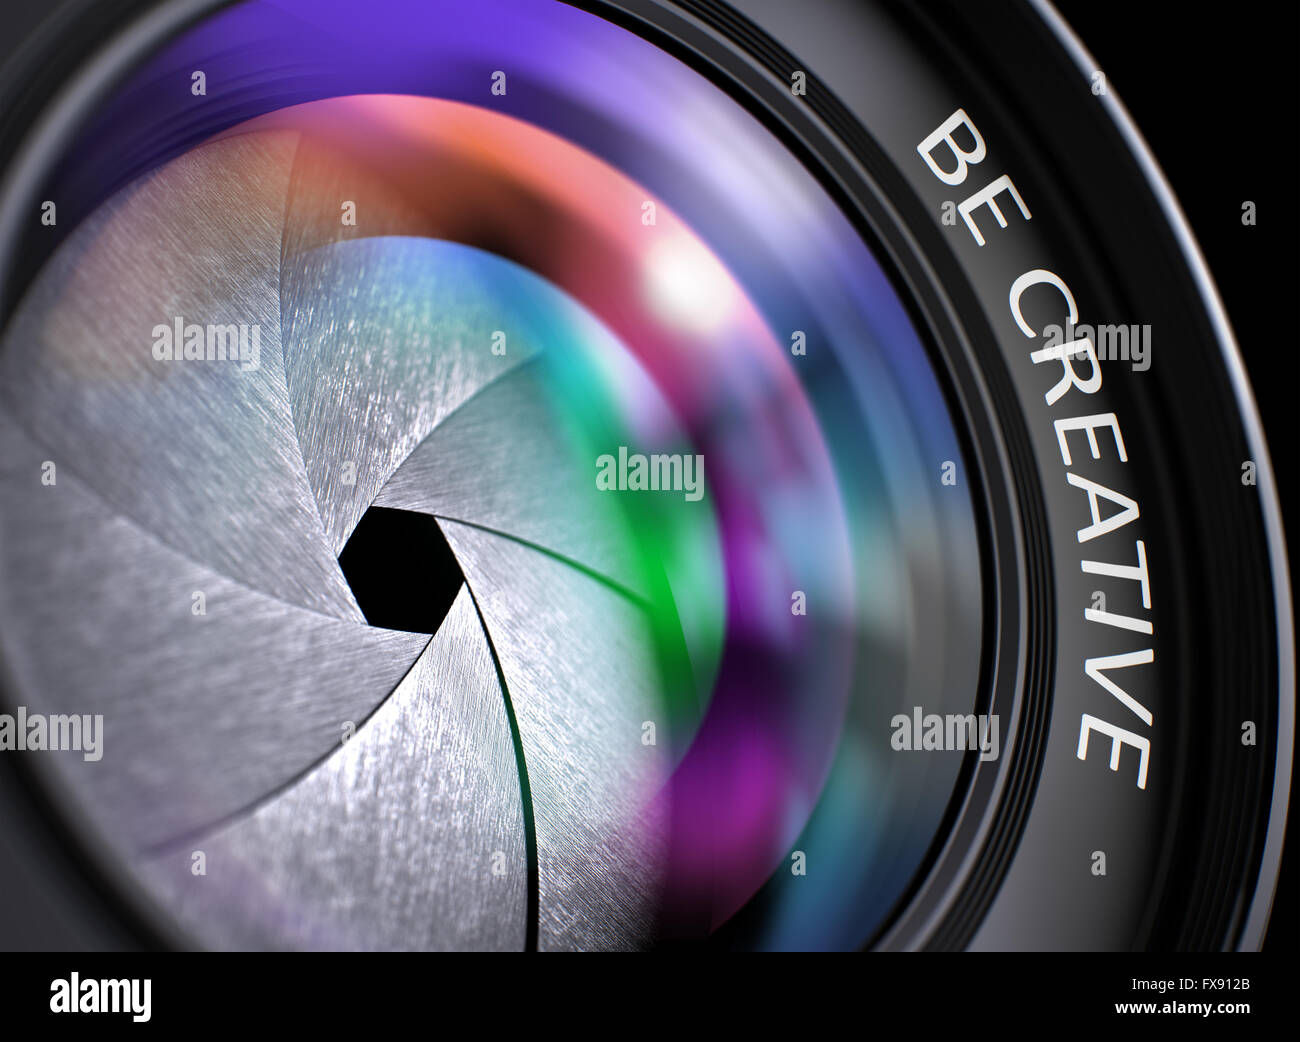 Be Creative Concept on Digital Camera Lens . - Stock Image